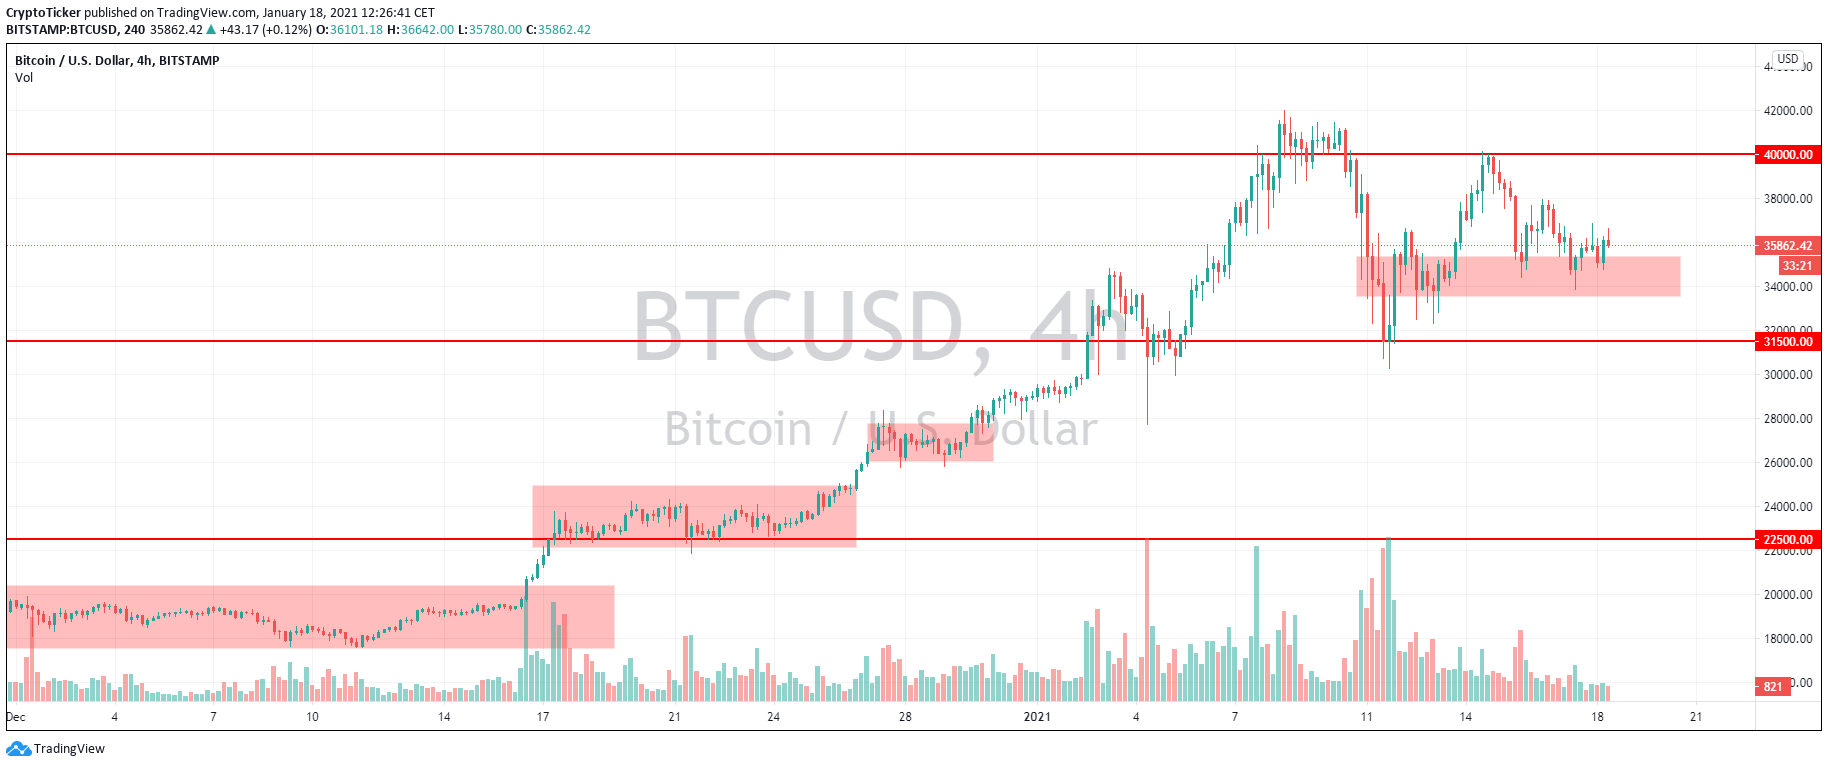 BTC/USD 4-hour chart showing price consolidations along the uptrend